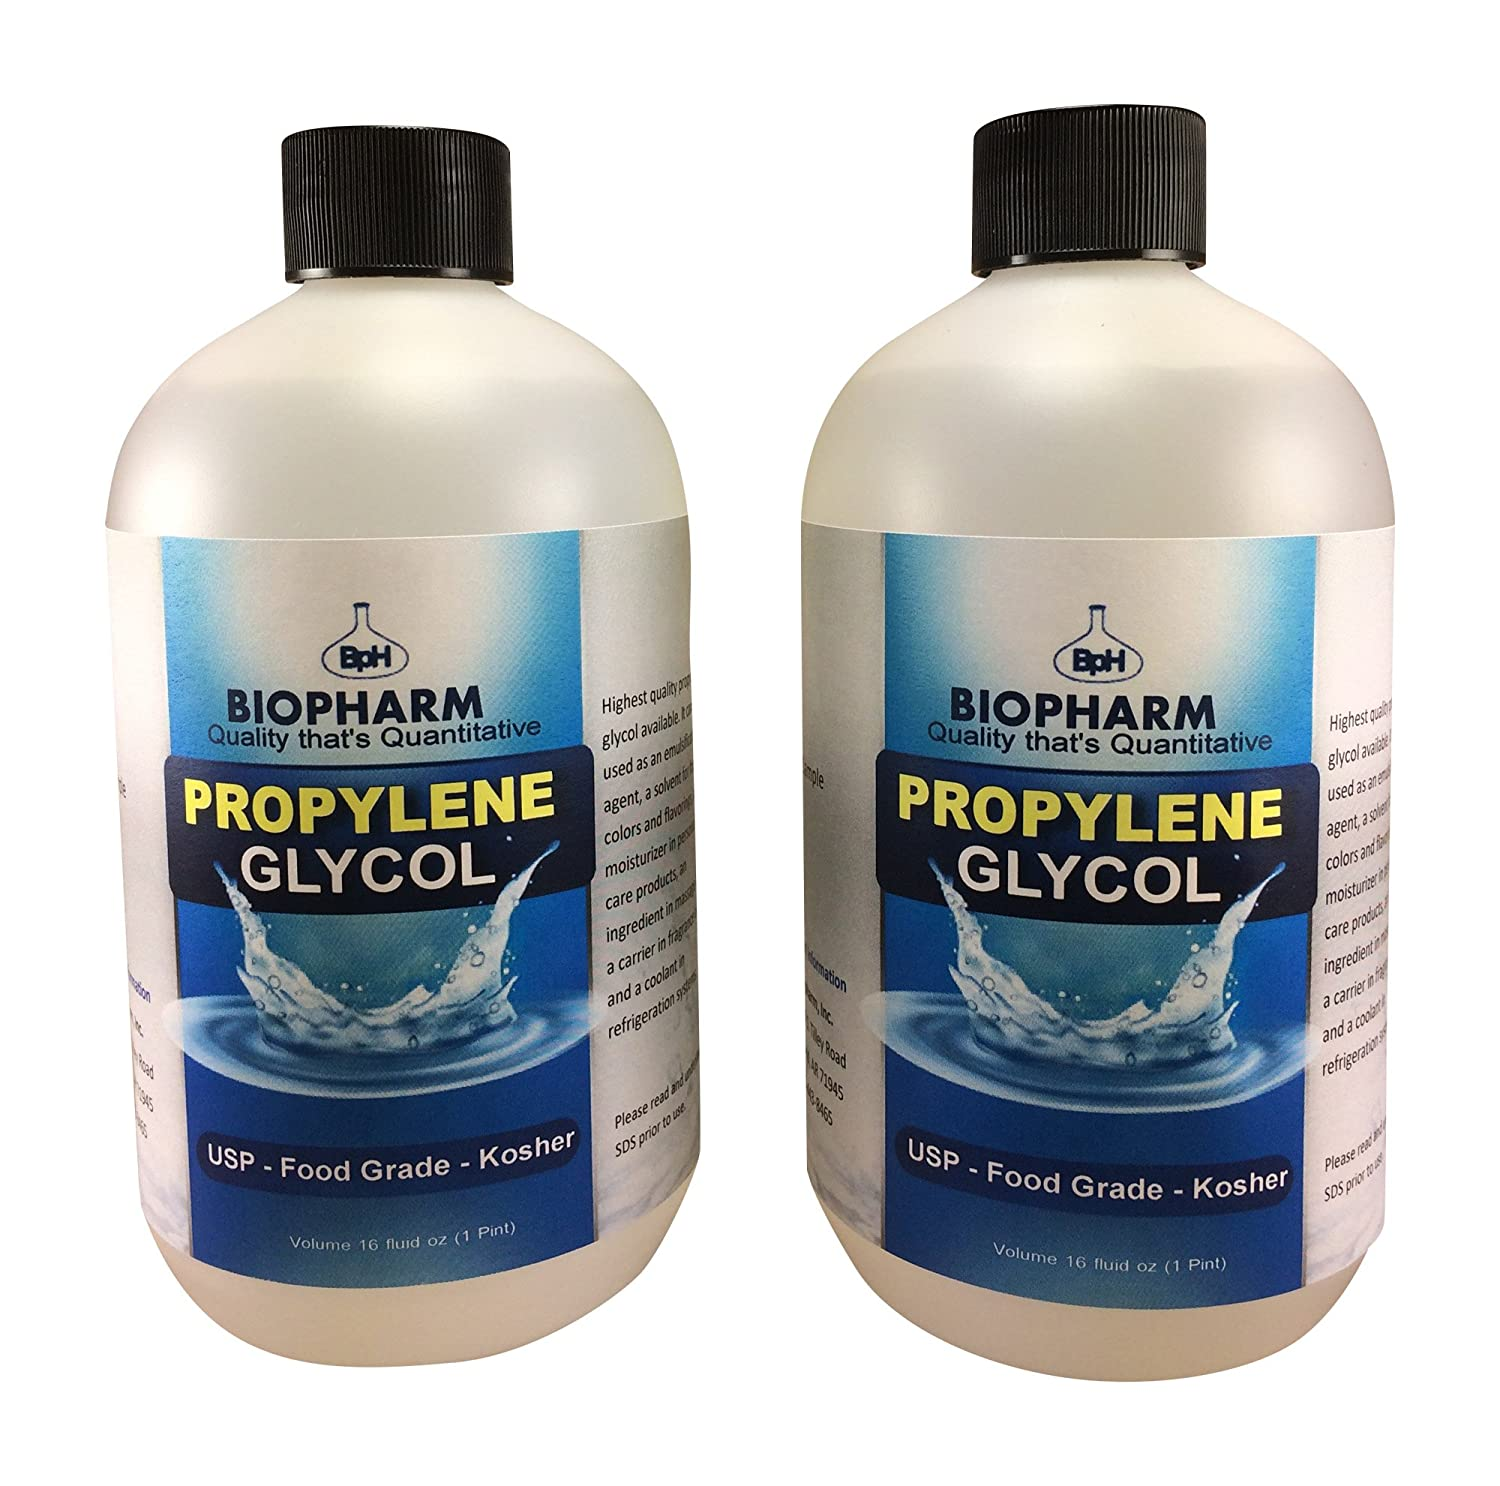 Propylene Glycol USP, Kosher, Food Grade 2-Pack 500 mL Each